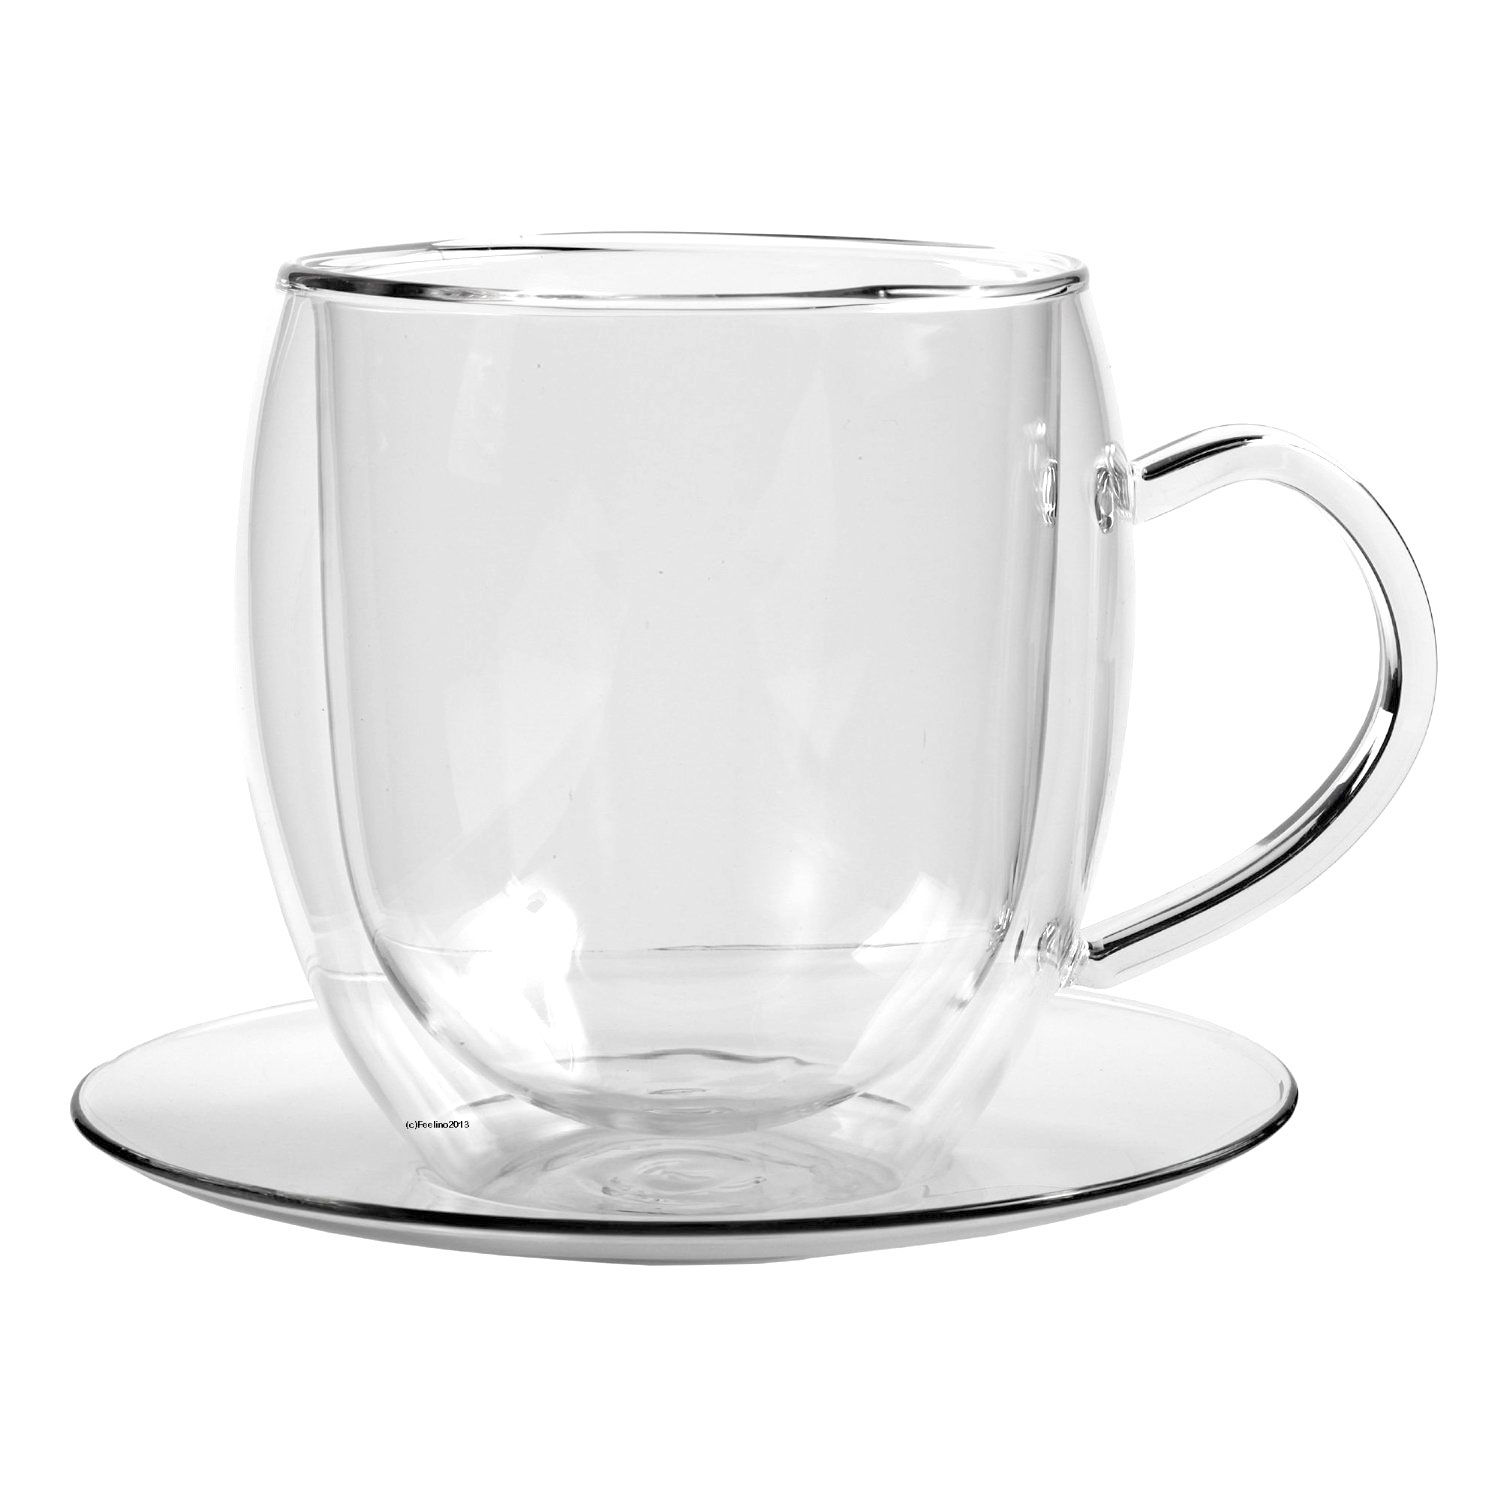 Xxl Teetasse Feelino 400ml